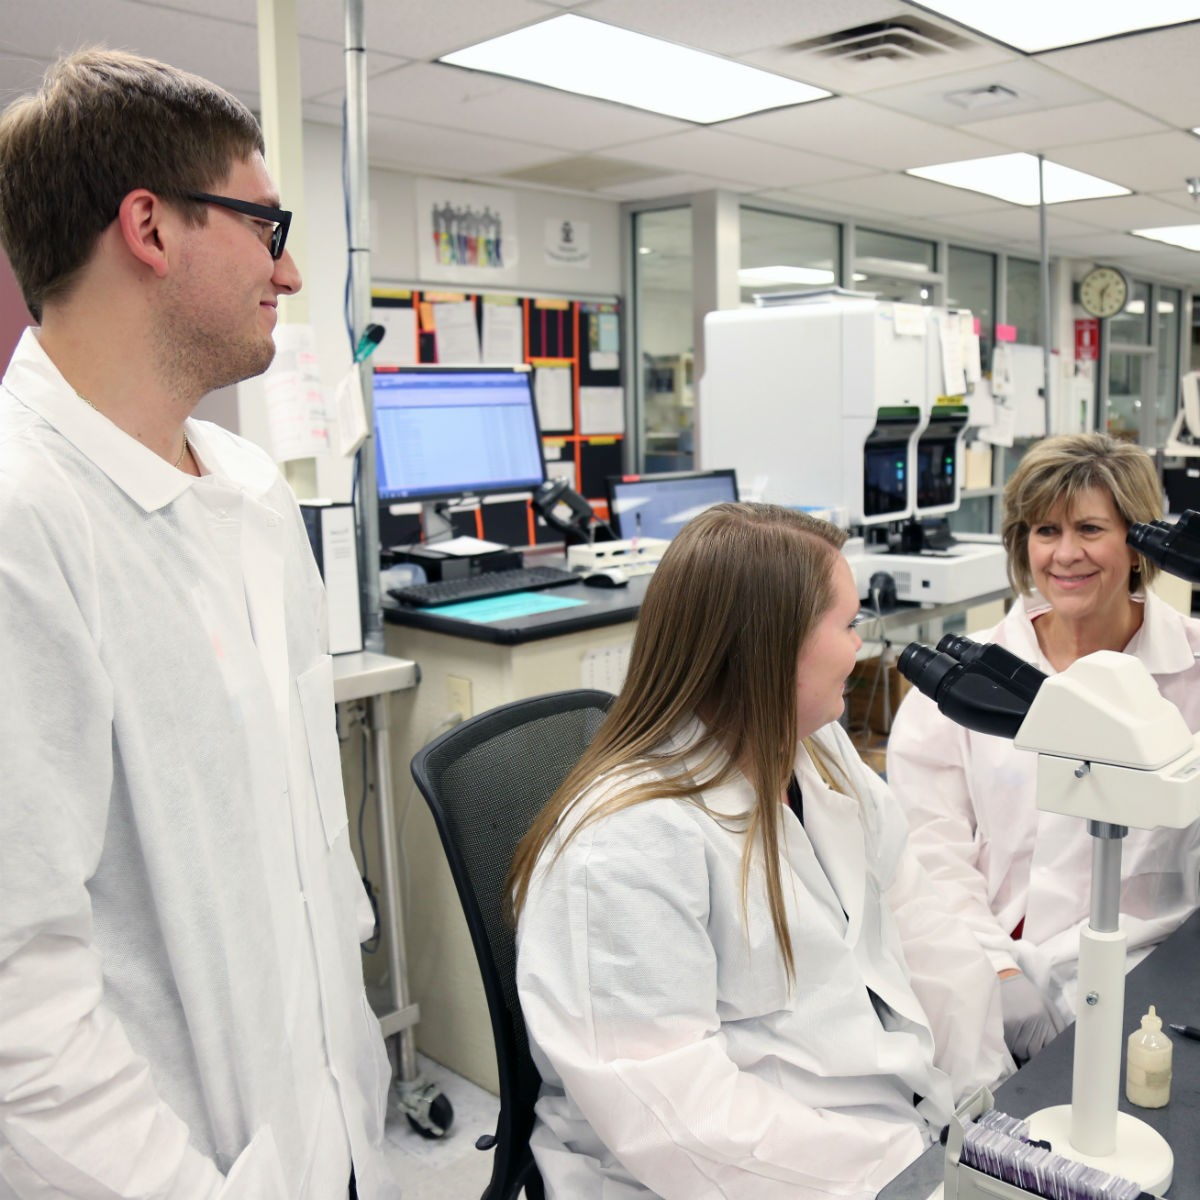 The MLS program at Mercy Hospital Ardmore is in its third year and is accredited by the National Accrediting Agency for Clinical Laboratory Science